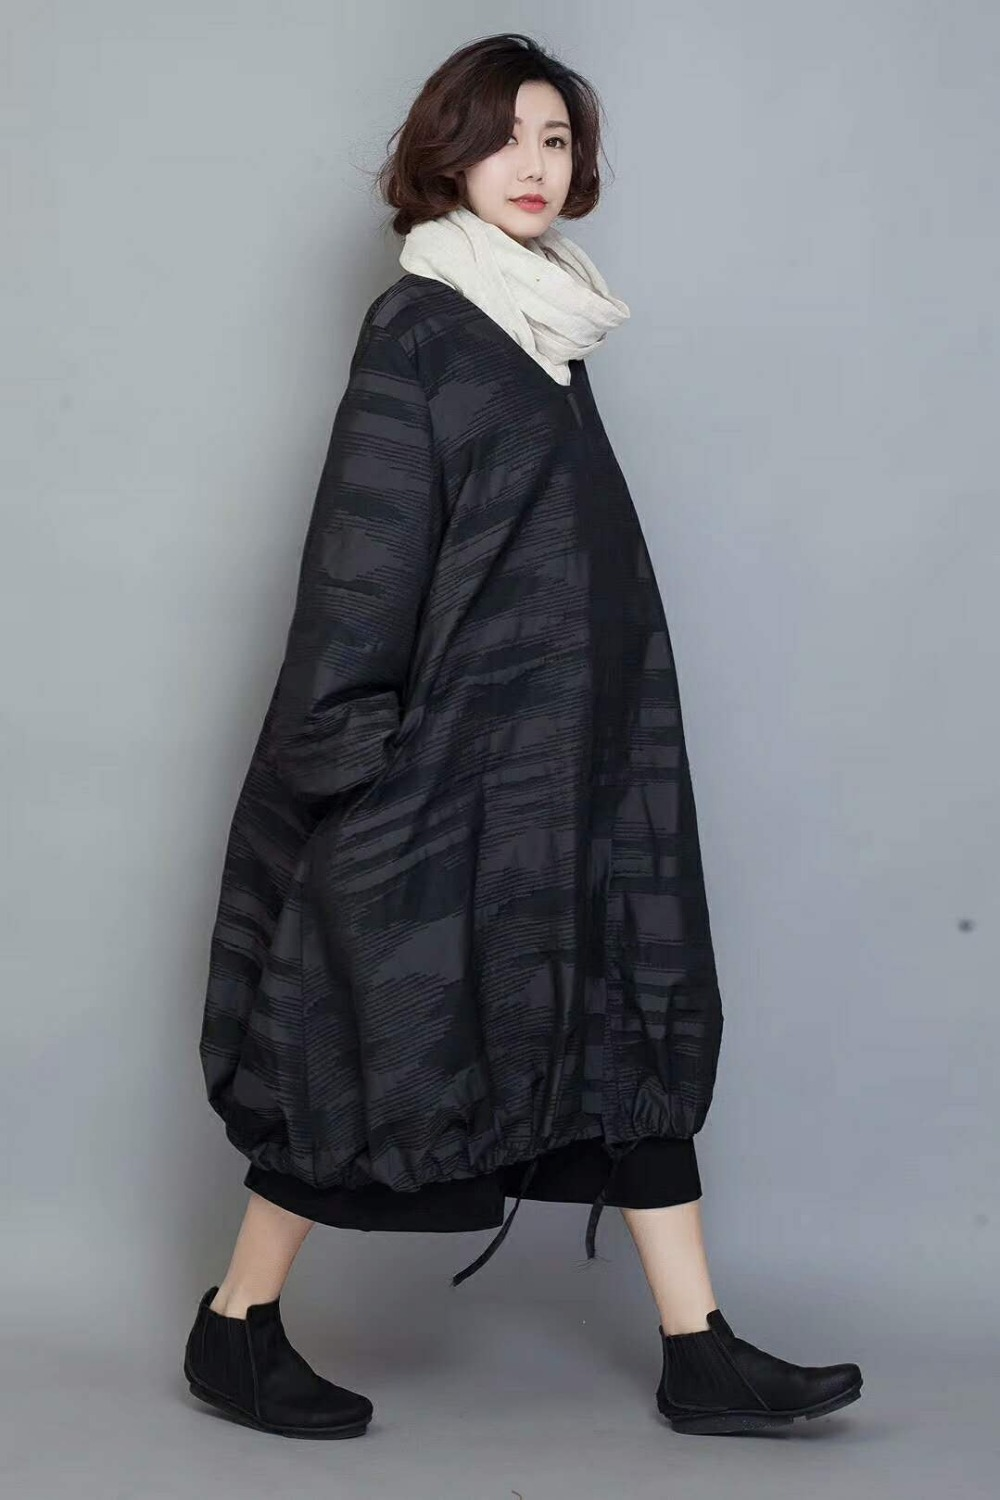 2018 female original design new spring high quality outerwear plus size loose long fashion casual brand trench